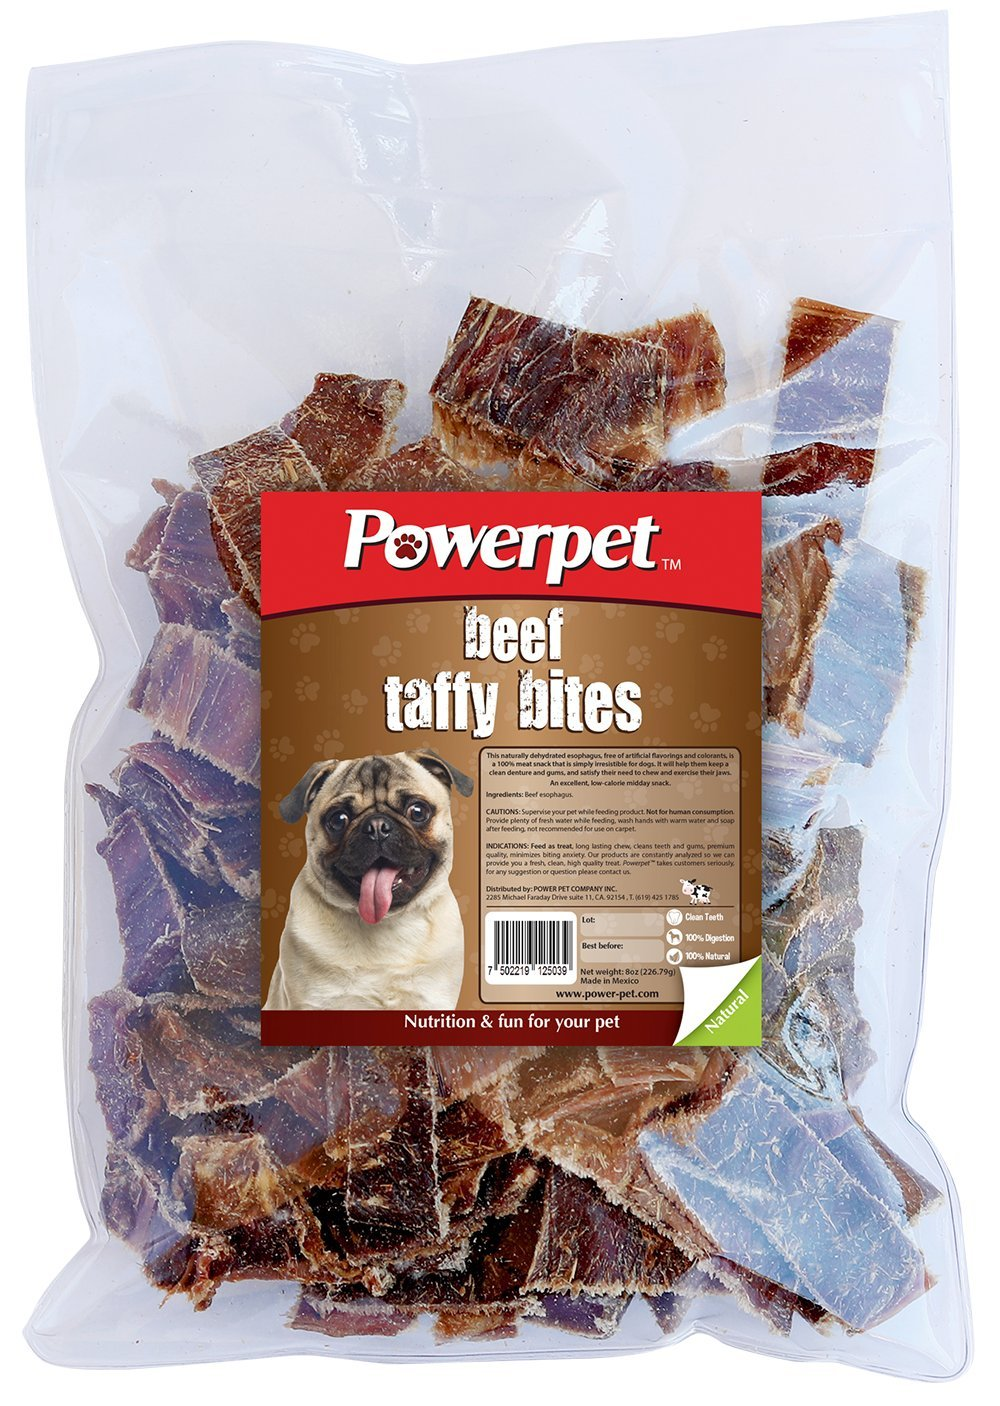 Powerpet: Beef Taffy Bites - Natural Dog Chew - 8 OZ Pack - Helps Improve Dental Hygiene - 100% Natural & Highly Digestible - Protein with Low Fat - Beef Jerky Dog Treat - Made from Beef Esophagus